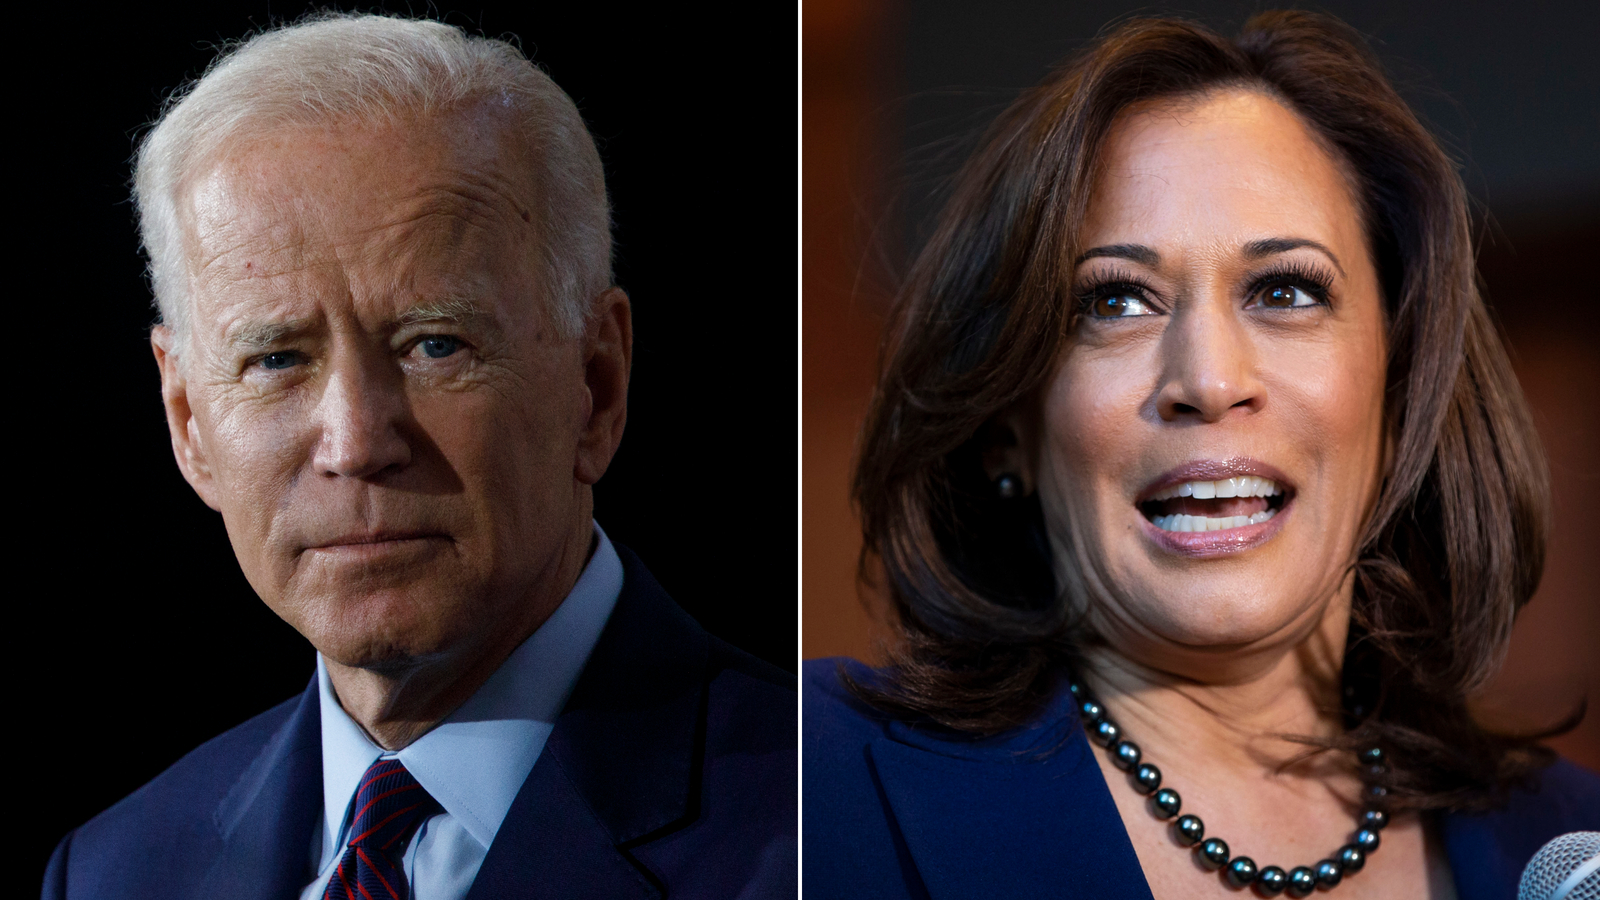 Biden and Harris set to deliver speech together as Democratic ticket in Delaware